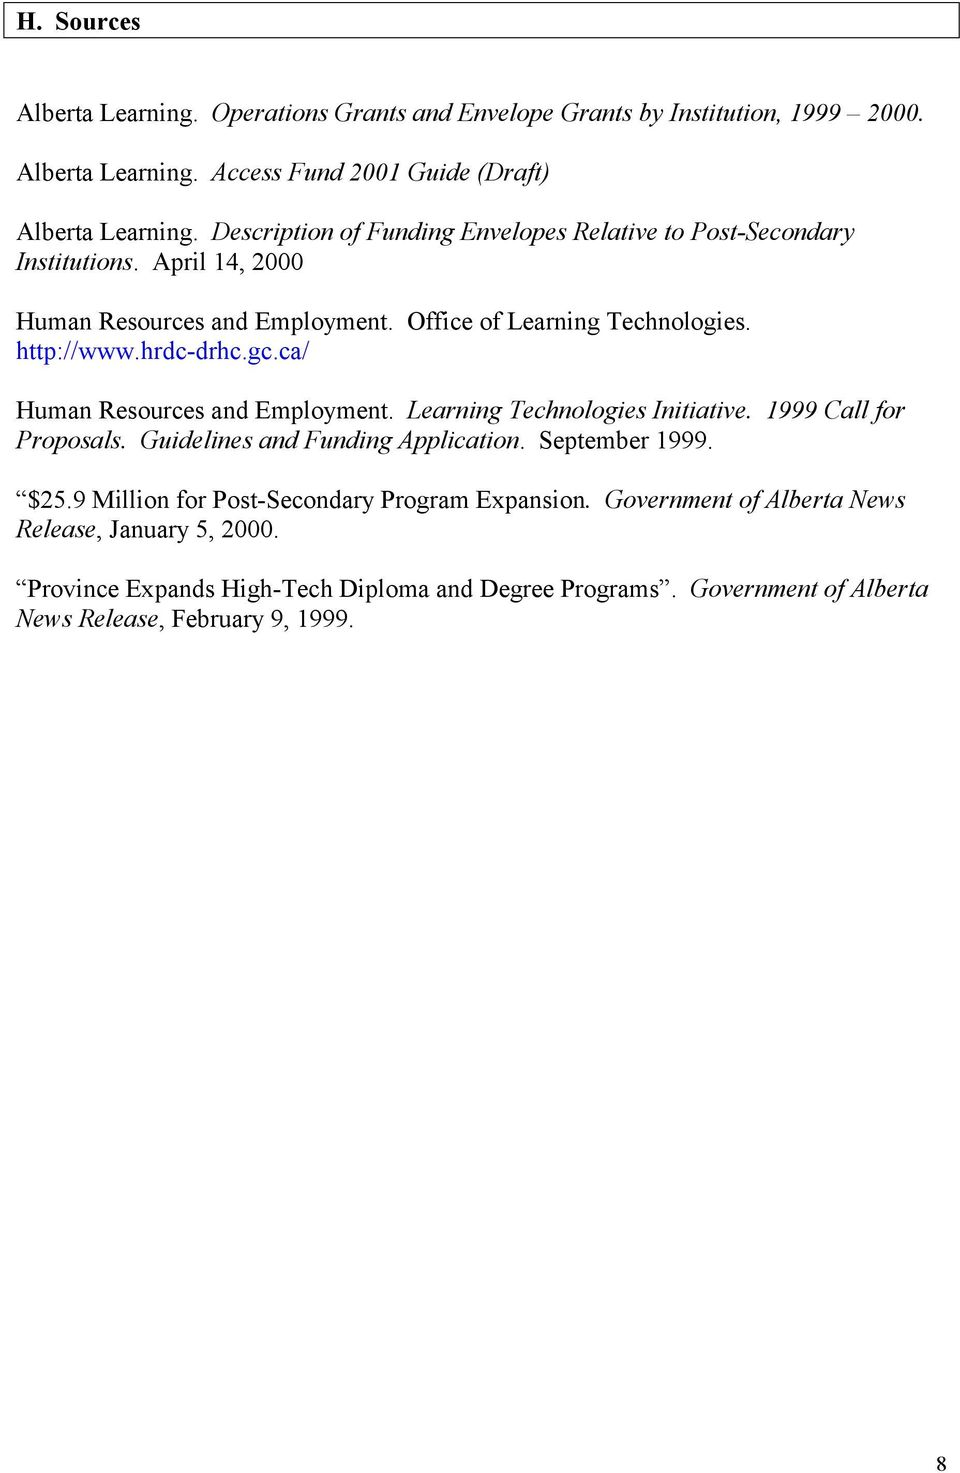 gc.ca/ Human Resources and Employment. Learning Technologies Initiative. 1999 Call for Proposals. Guidelines and Funding Application. September 1999. $25.